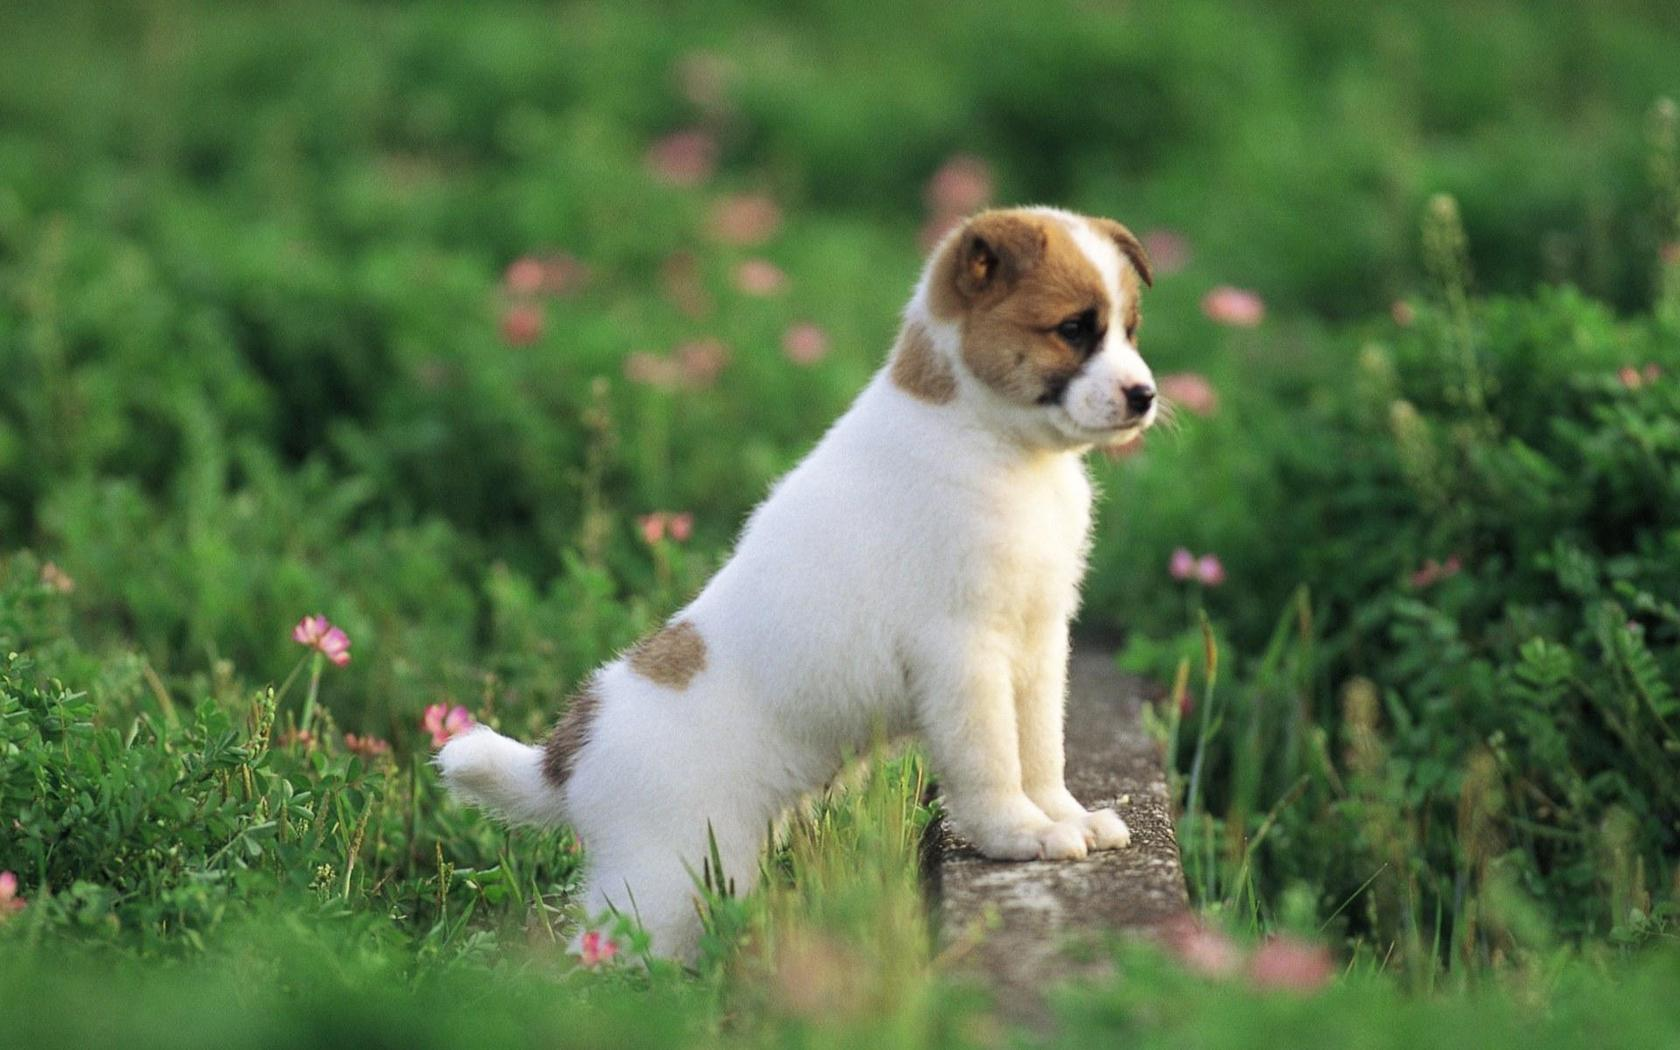 Toy Trawler Spaniel Puppies: Toy Teddy Roosevelt Terrier Puppy Breed